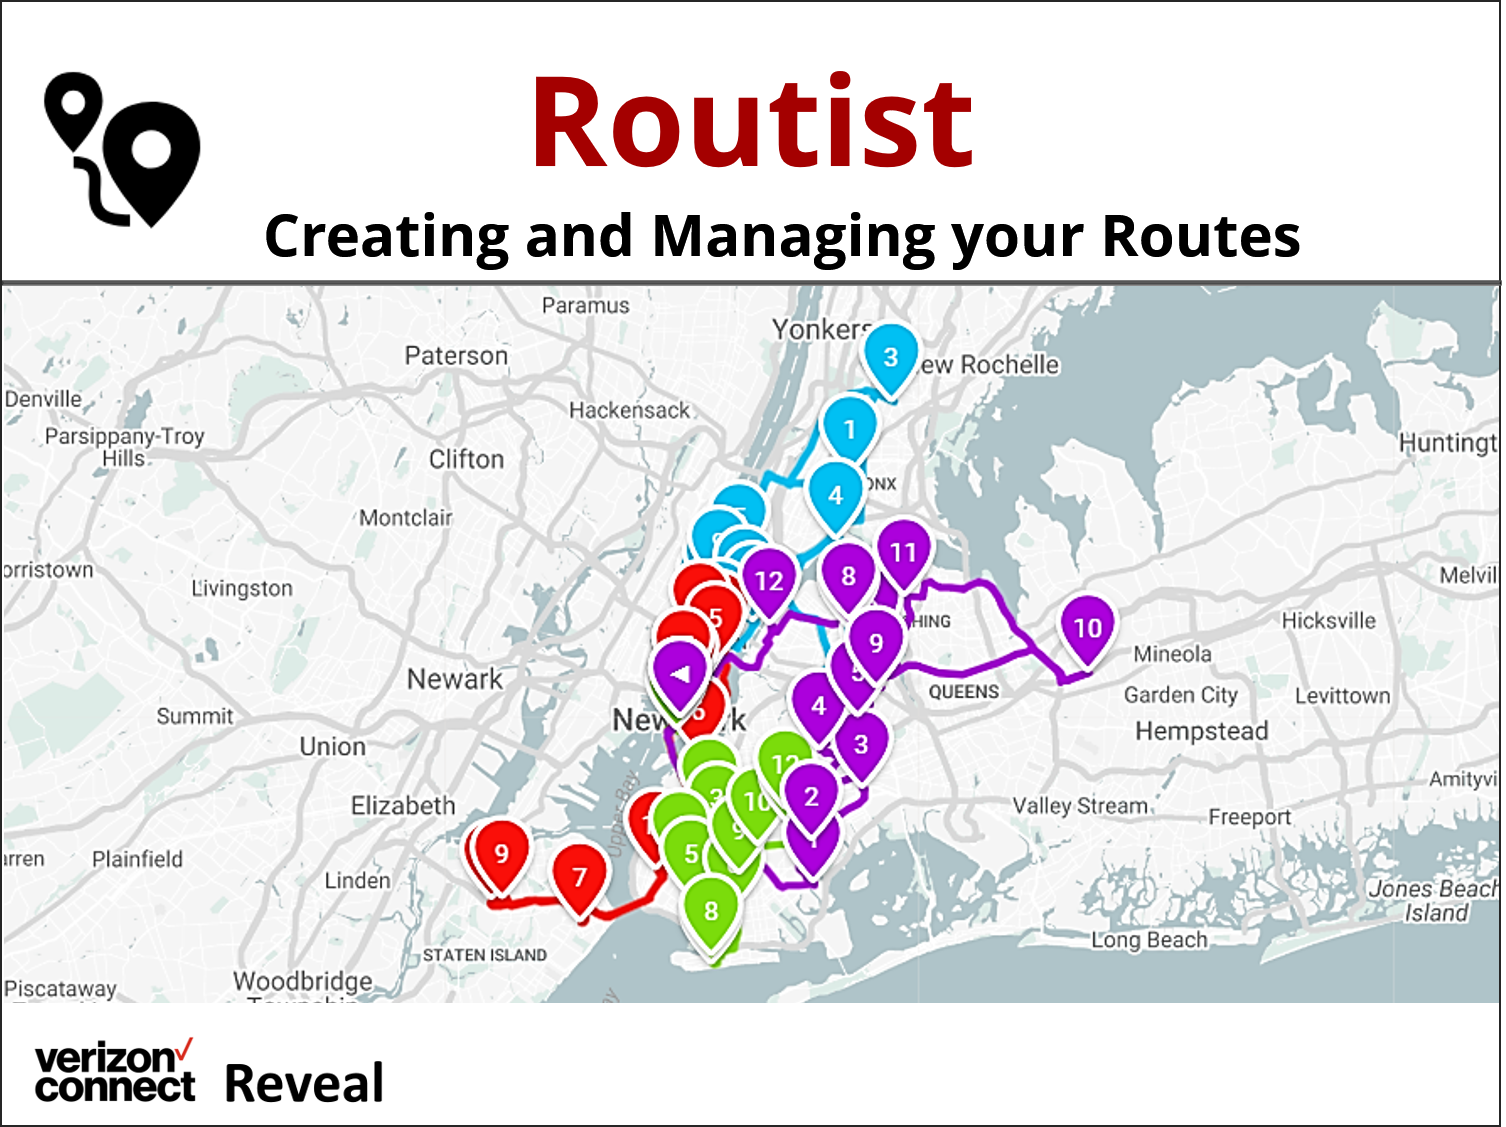 Routist - Creating & Managing Your Routes eTutorial